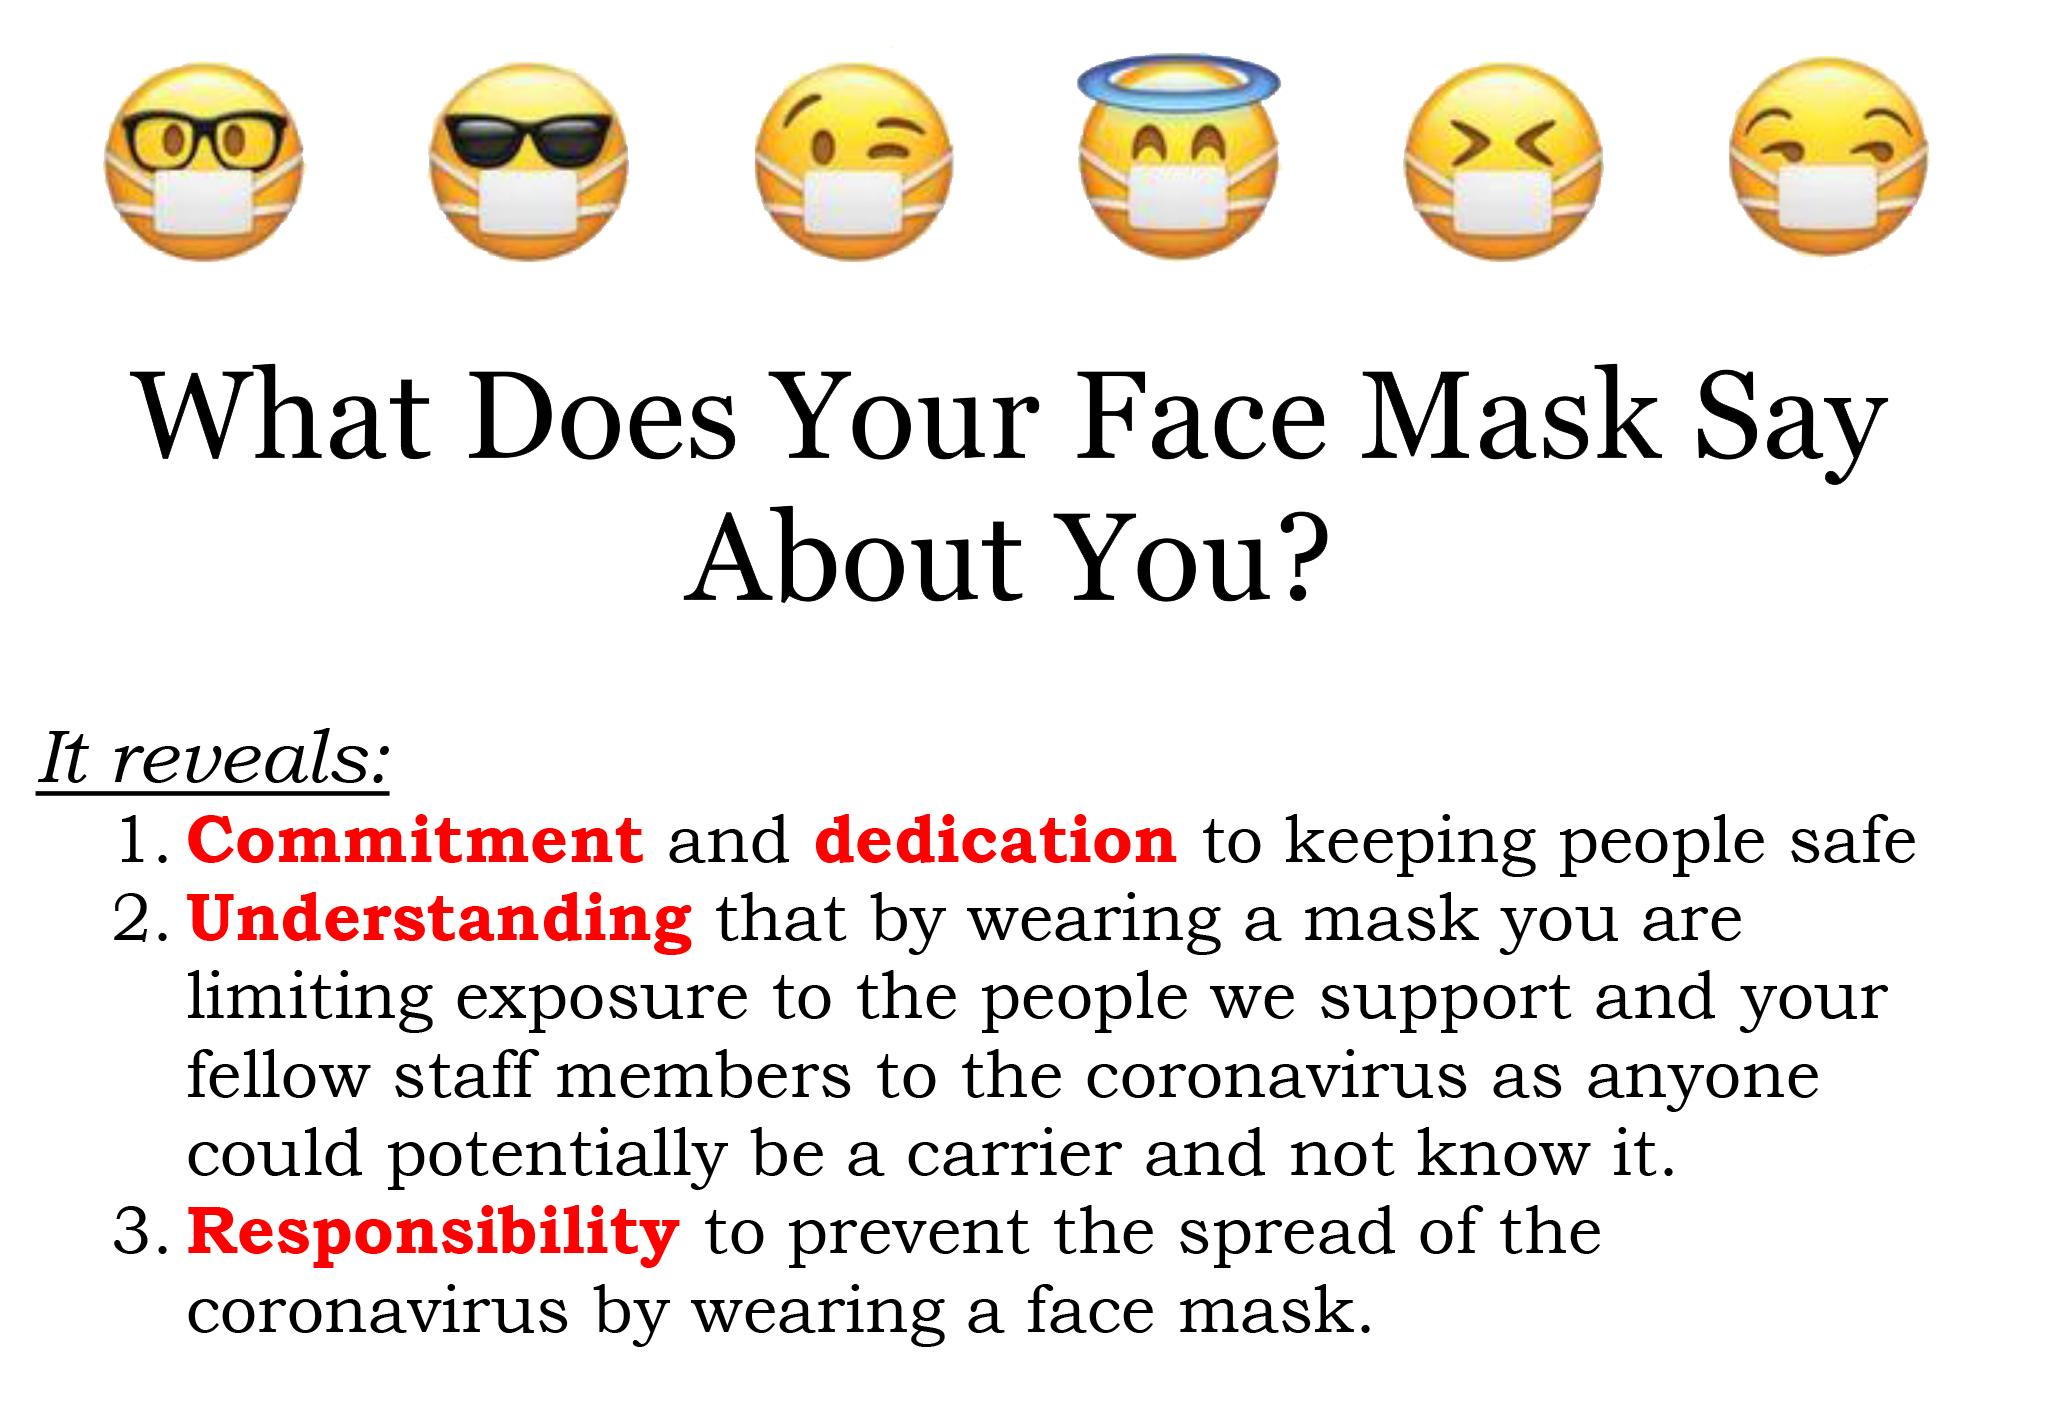 What Does Your Face Mask Say About You.jpg